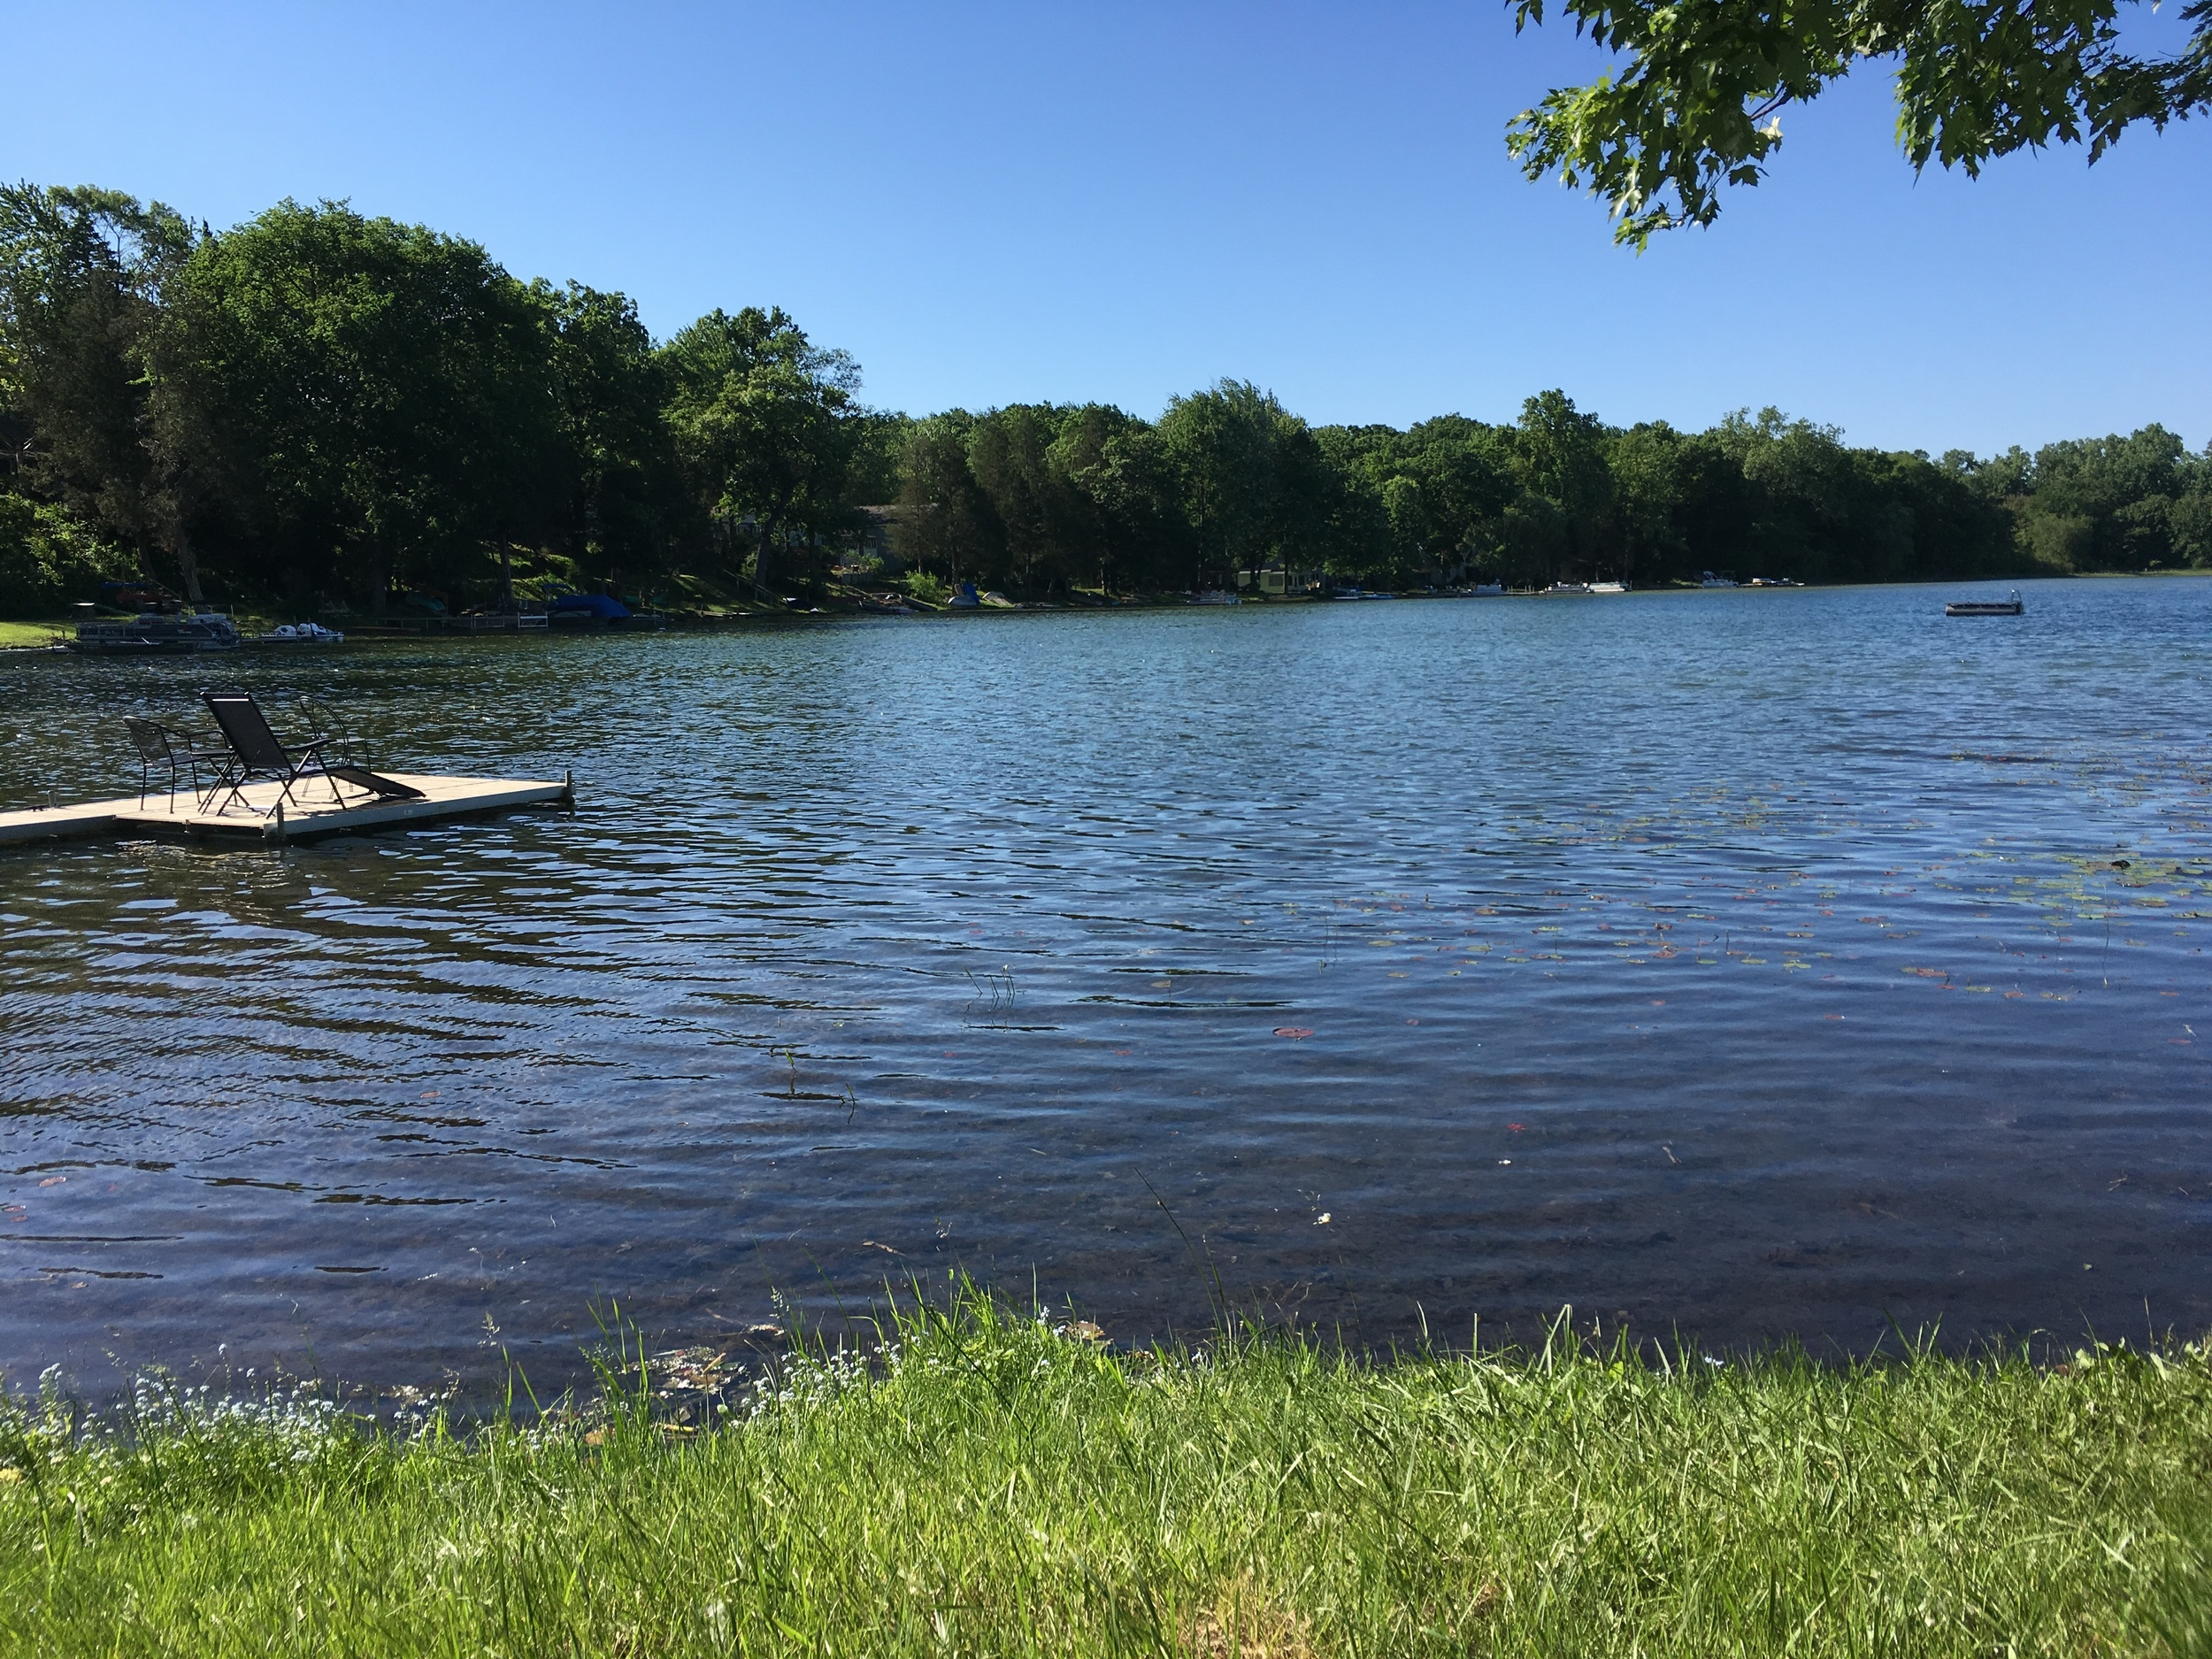 Sold - Listed at   $79,900   3816 Langley, Pinckney, MI 48169 Pinckney Schools  Buildable, southern facing lot with 50 feet of frontage on the water gently slopes to quiet, no wake, Cordley lake - lovely for swimming, kayaking, sky & bird watching. Only 30 minutes to Ann Arbor, 20 minutes to Brighton.